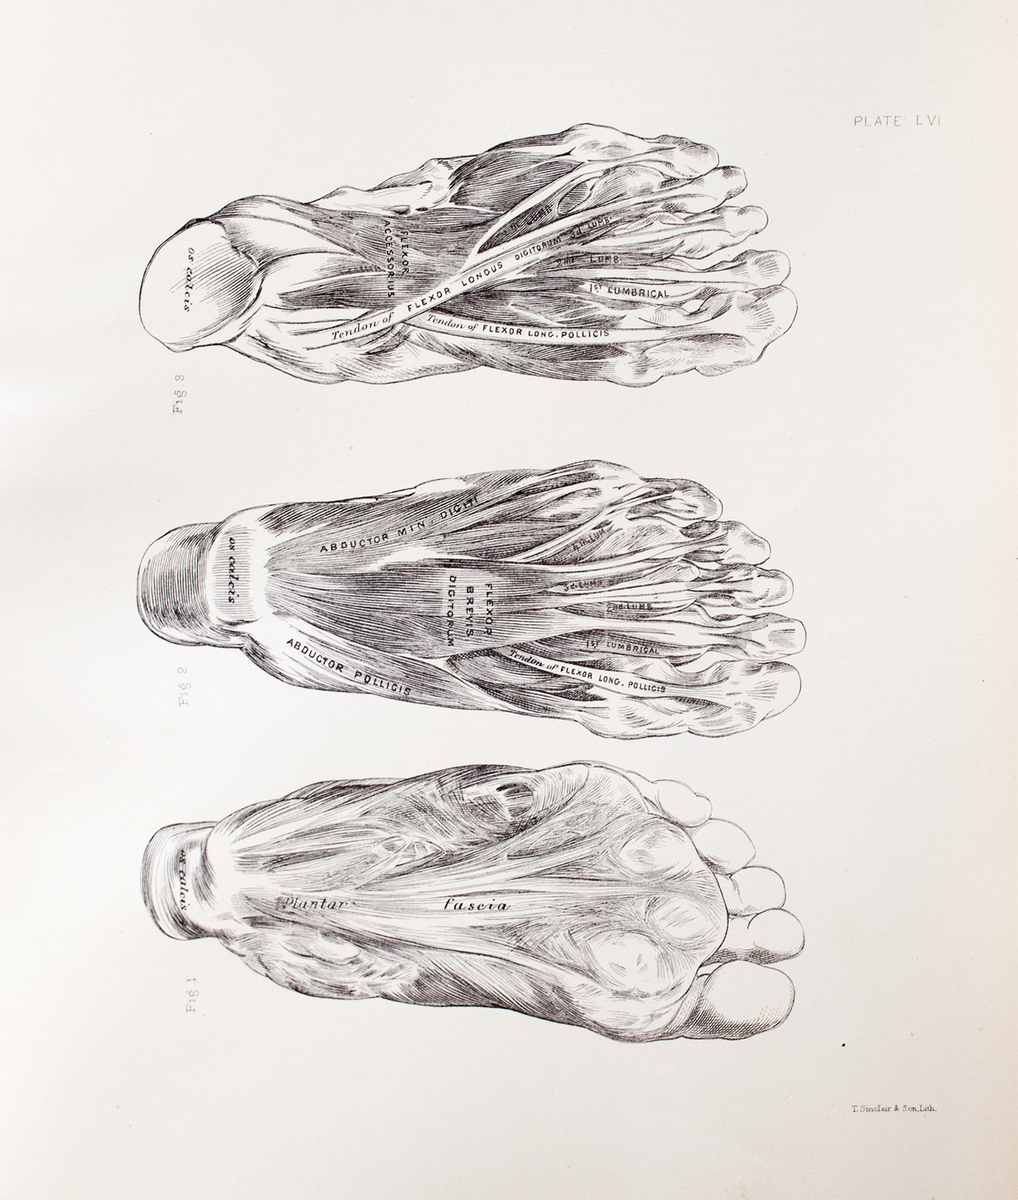 Anatomical diagram of the muscles of the foot